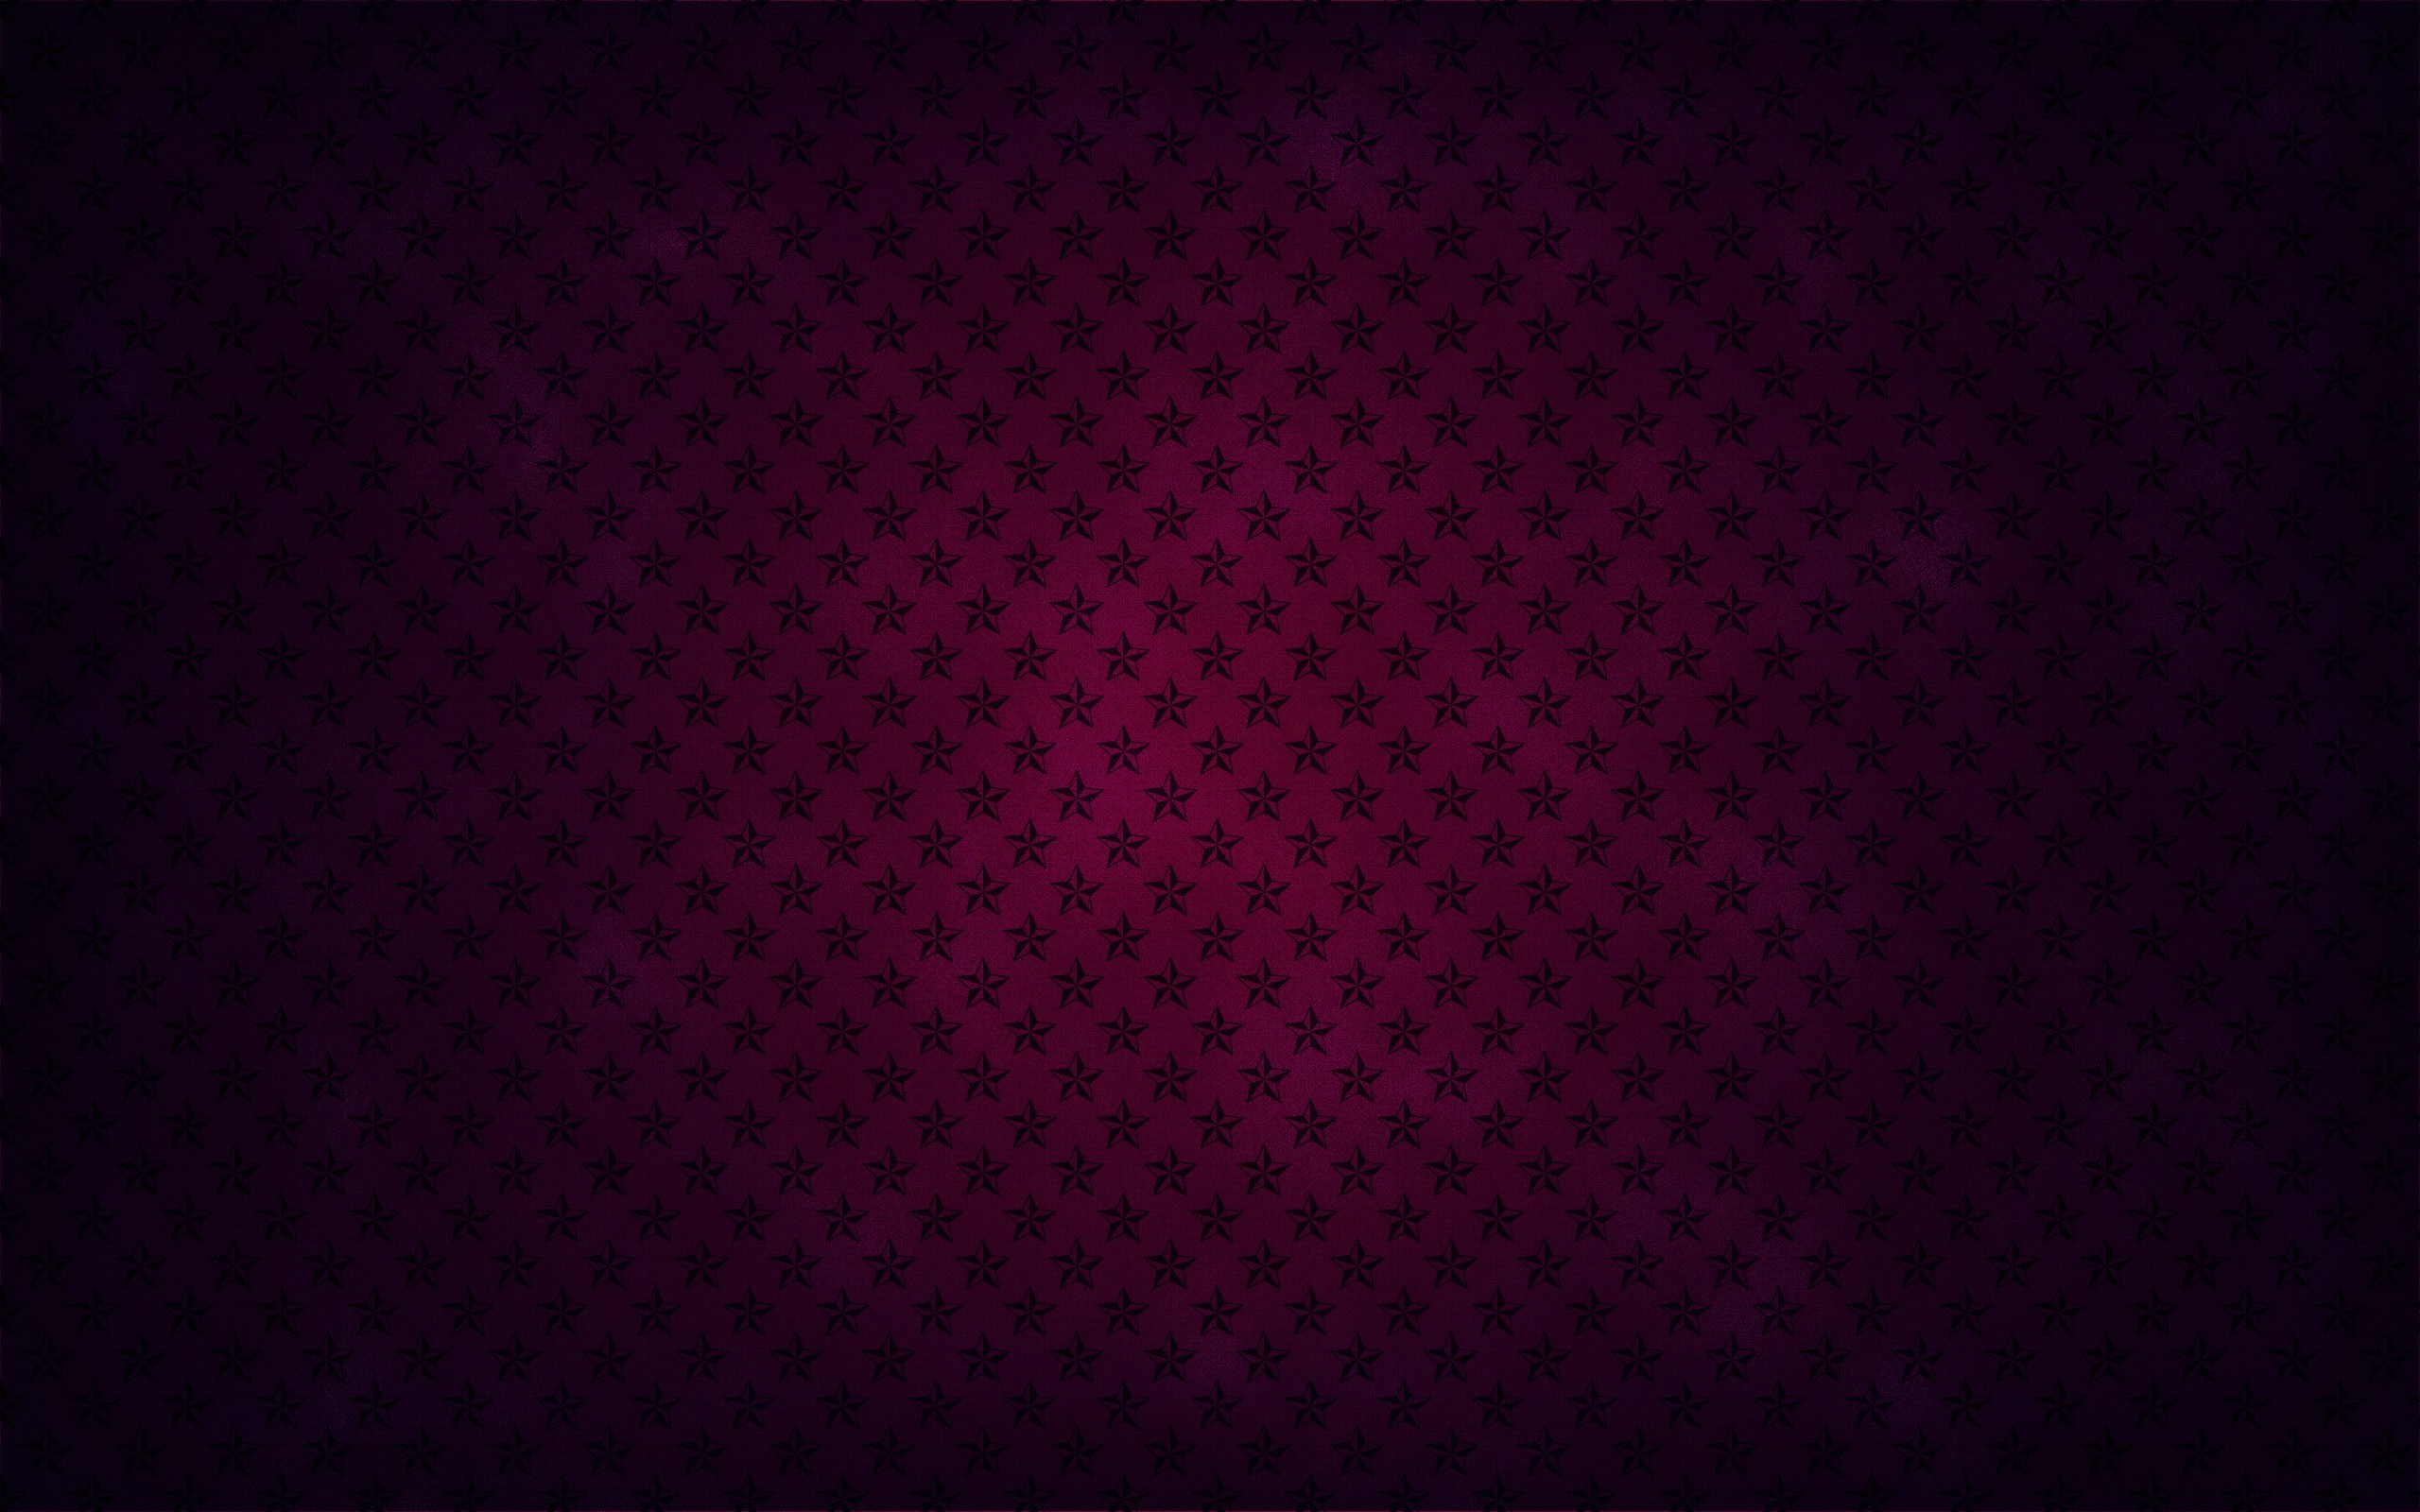 Pink And Black Background Download Free Beautiful Hd